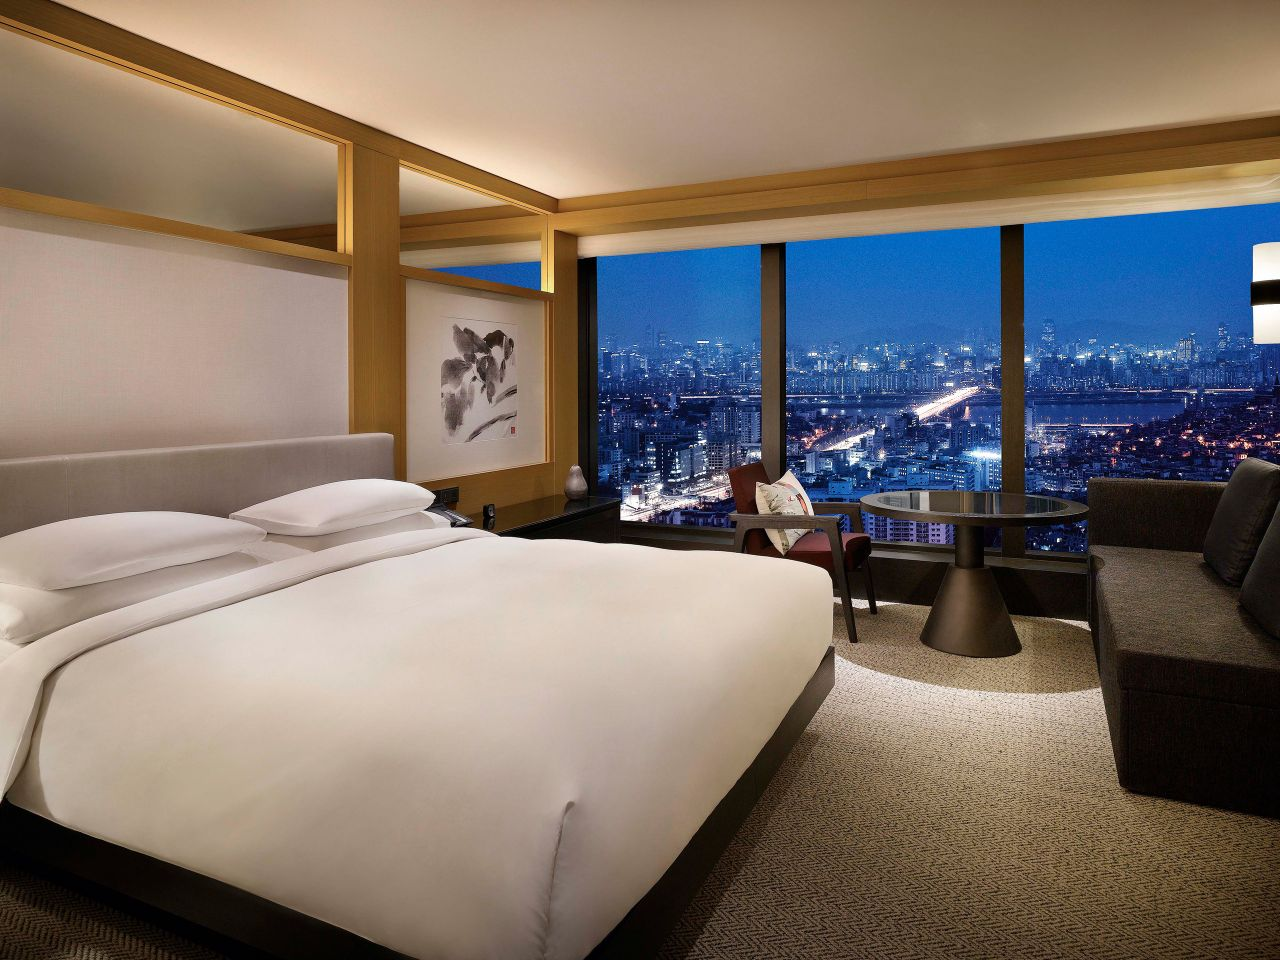 Luxury Hotel Rooms with City Views